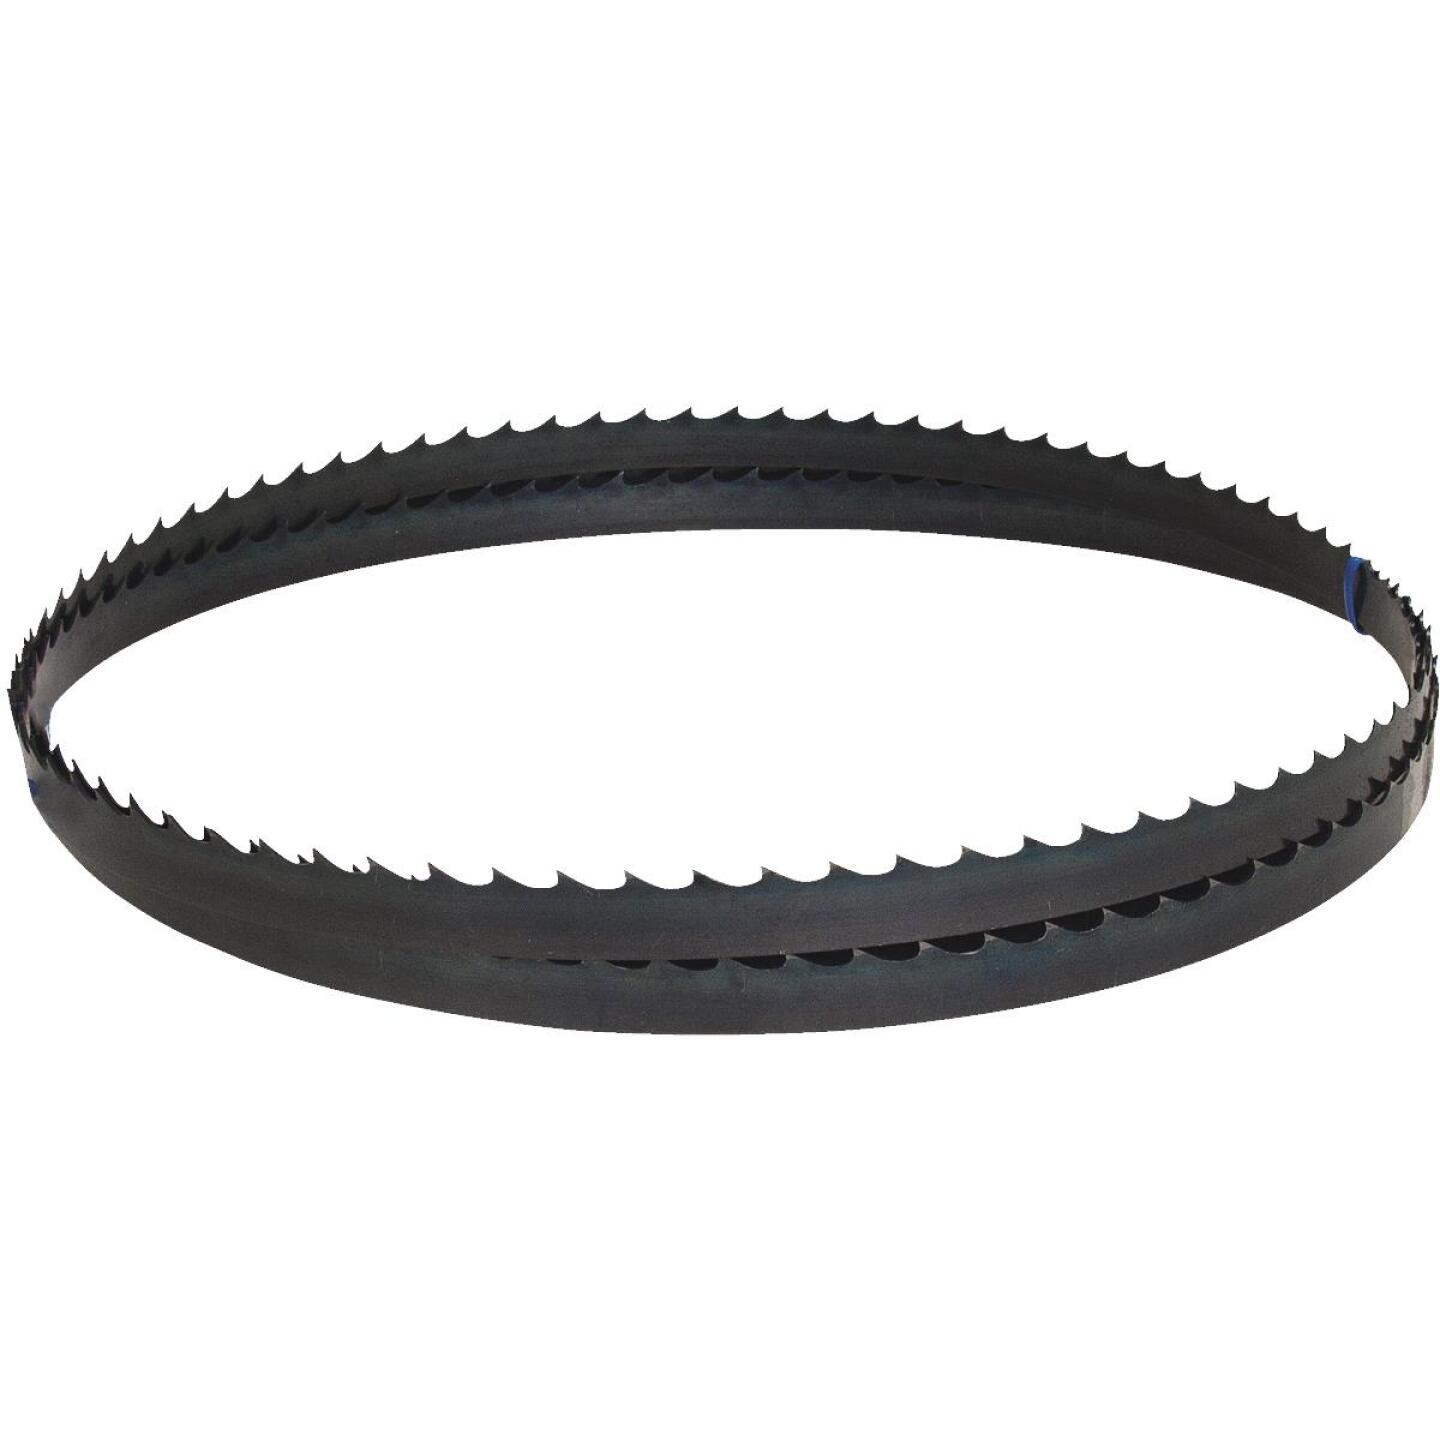 Olson 80 In. x 1/2 In. 3 TPI Hook Flex Back Band Saw Blade Image 1